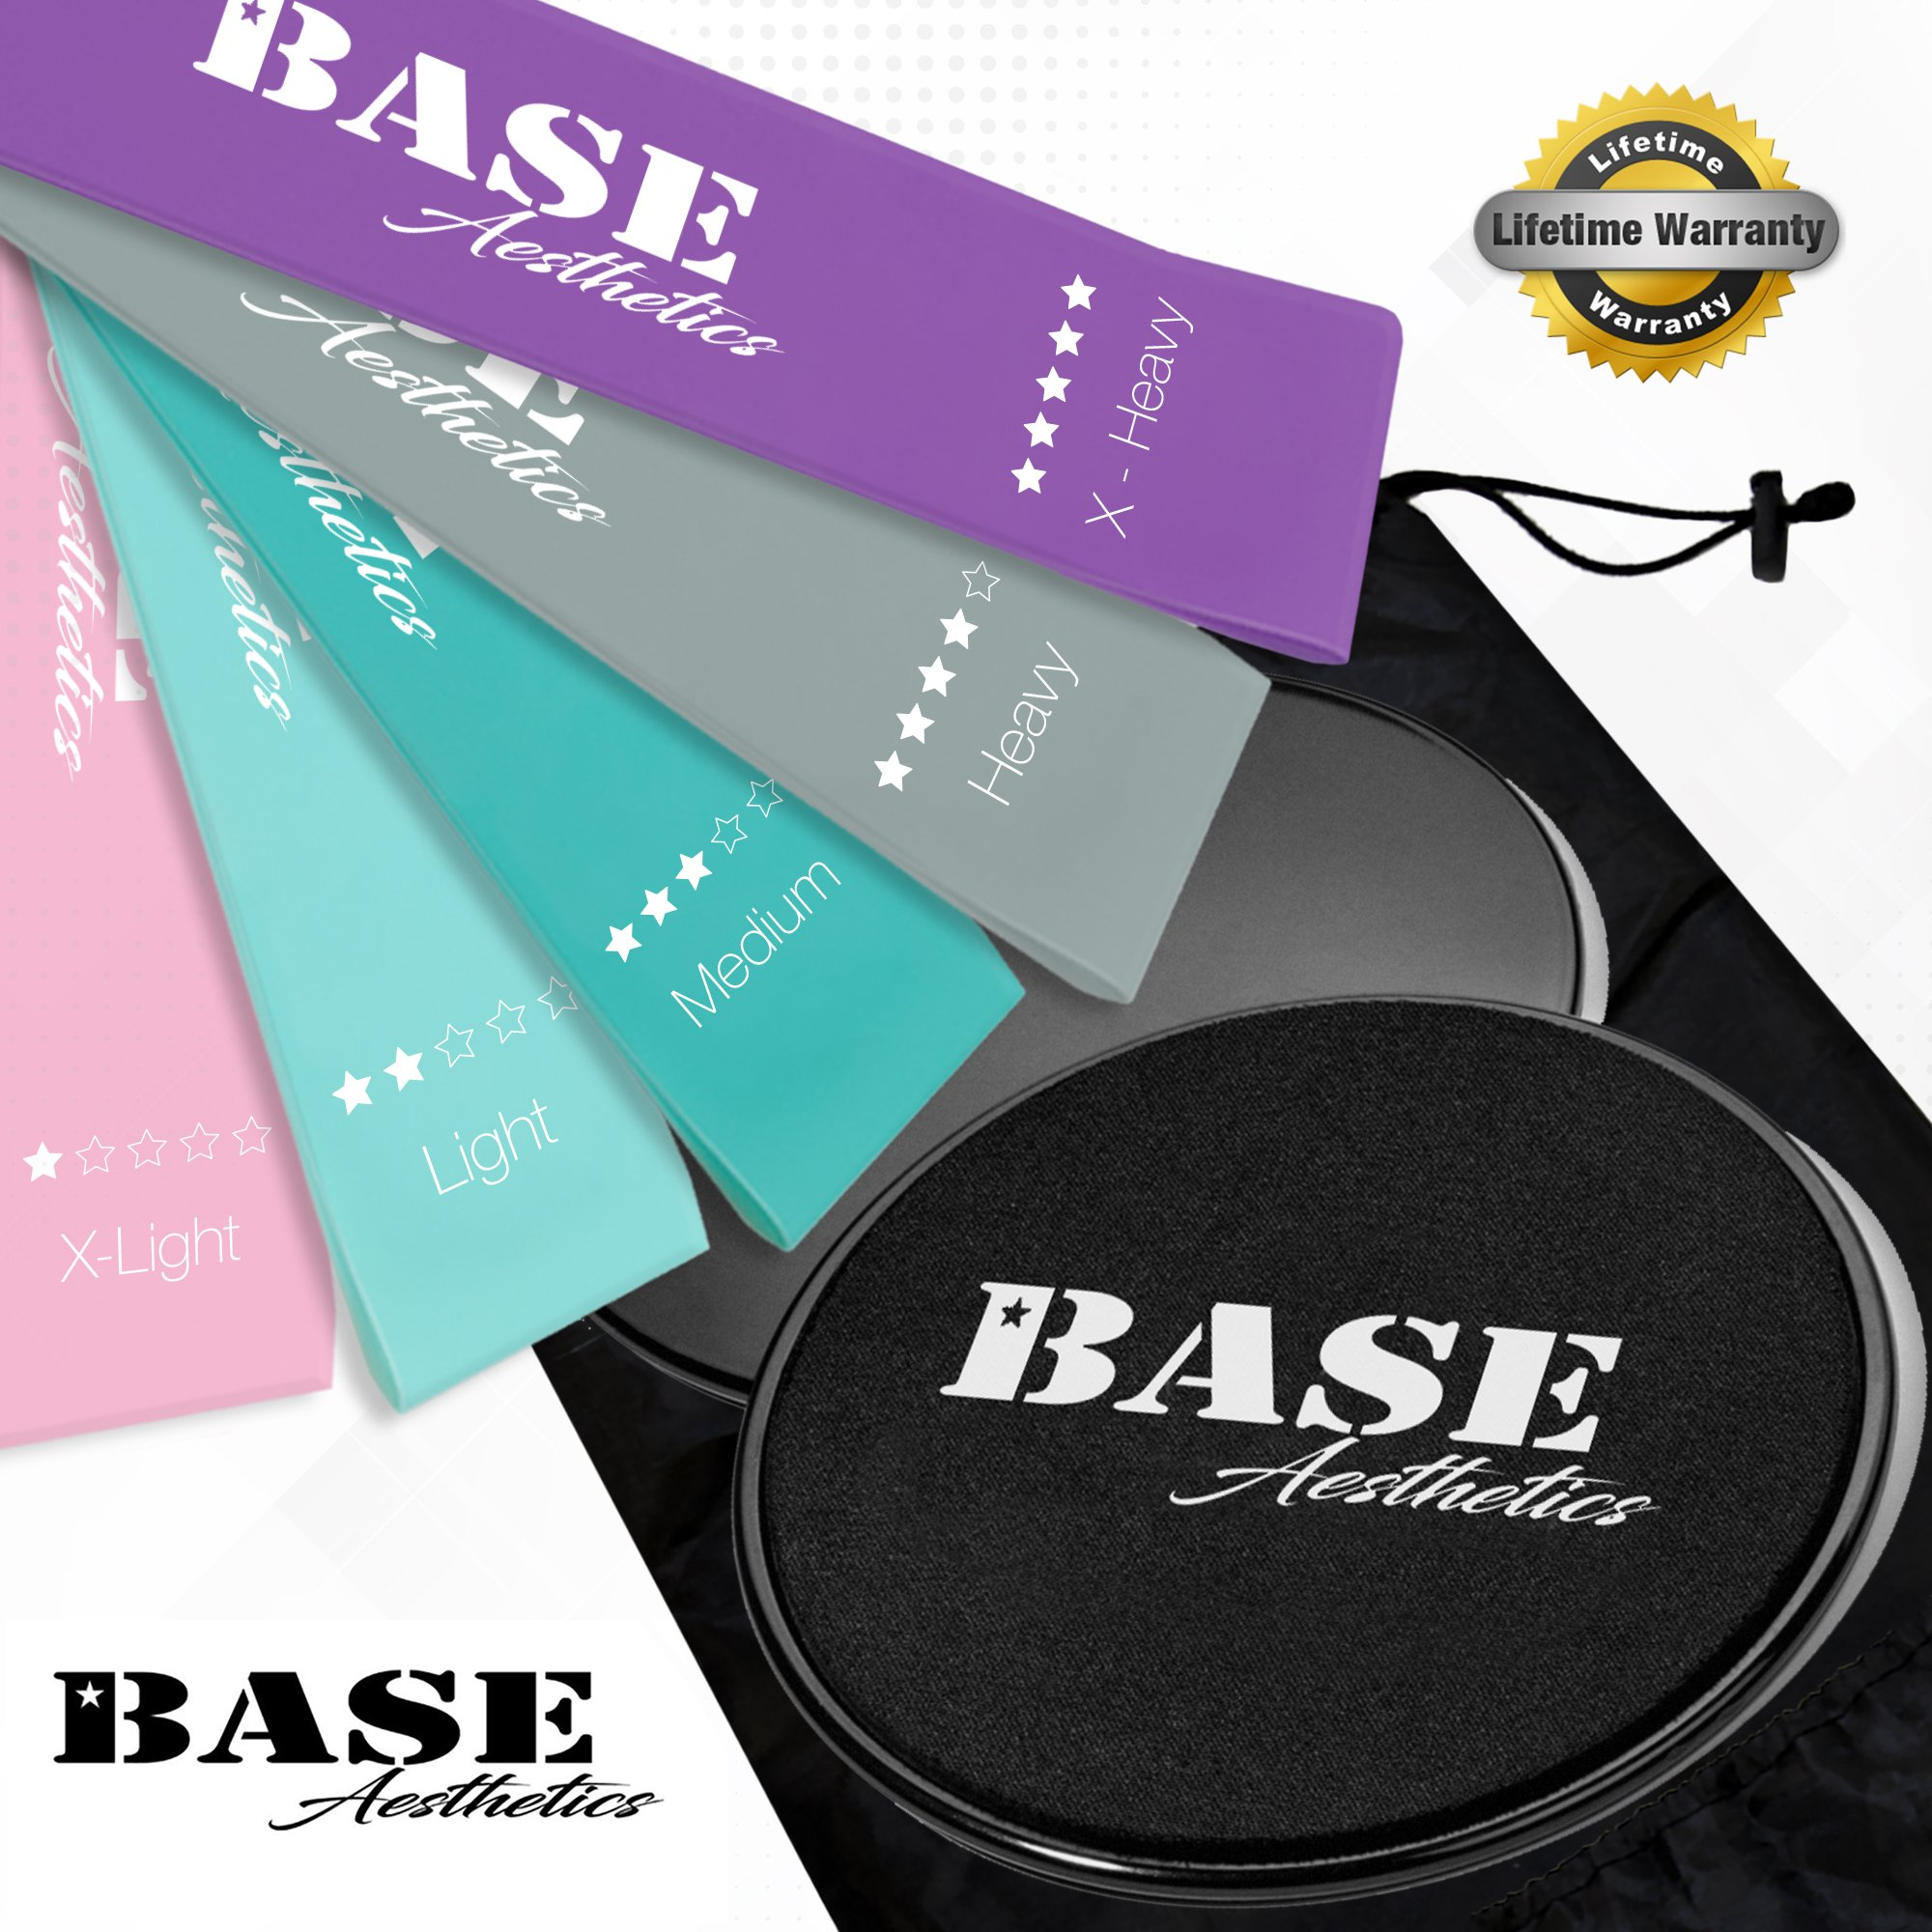 Base Aesthetics Dual Sided Gilding Discs Core Sliders (Set of 2) and Fitness Resistance Loop Bands (Set of 5) for Ultimate, Low Impact Exercises to Strengthen Abdominal, Glutes, Legs, and Stability